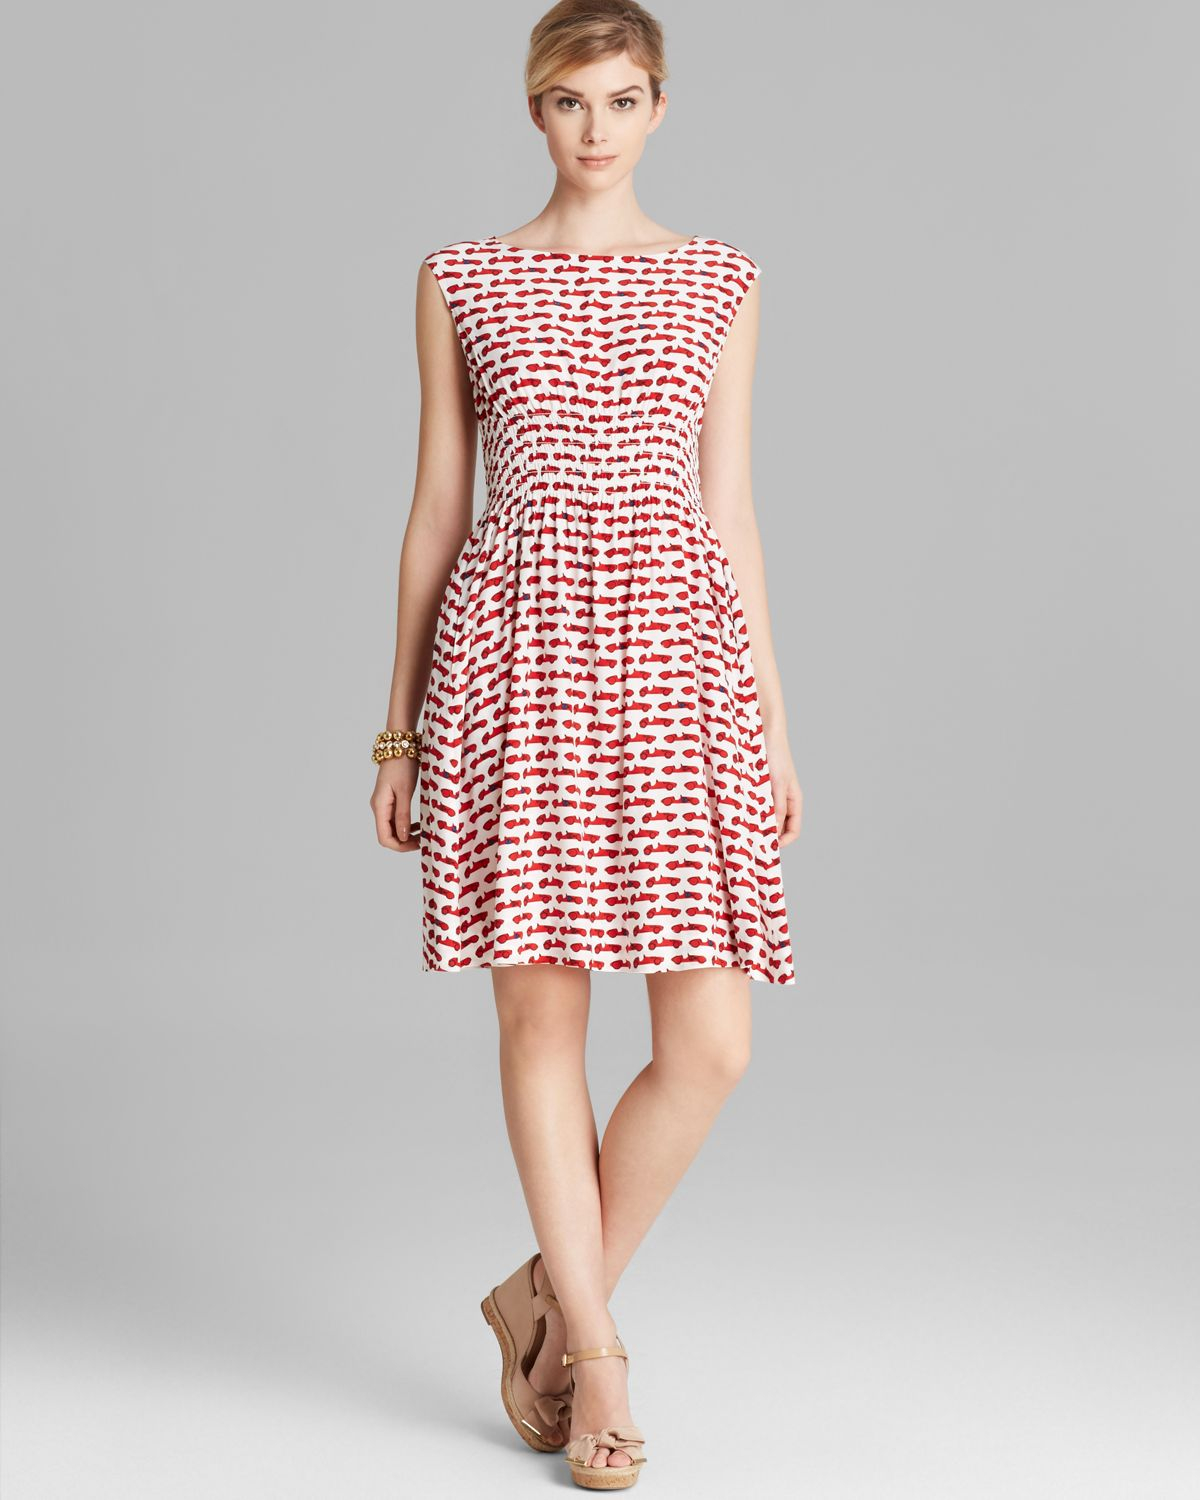 Kate Spade New York Blaire Dress In Red Lyst